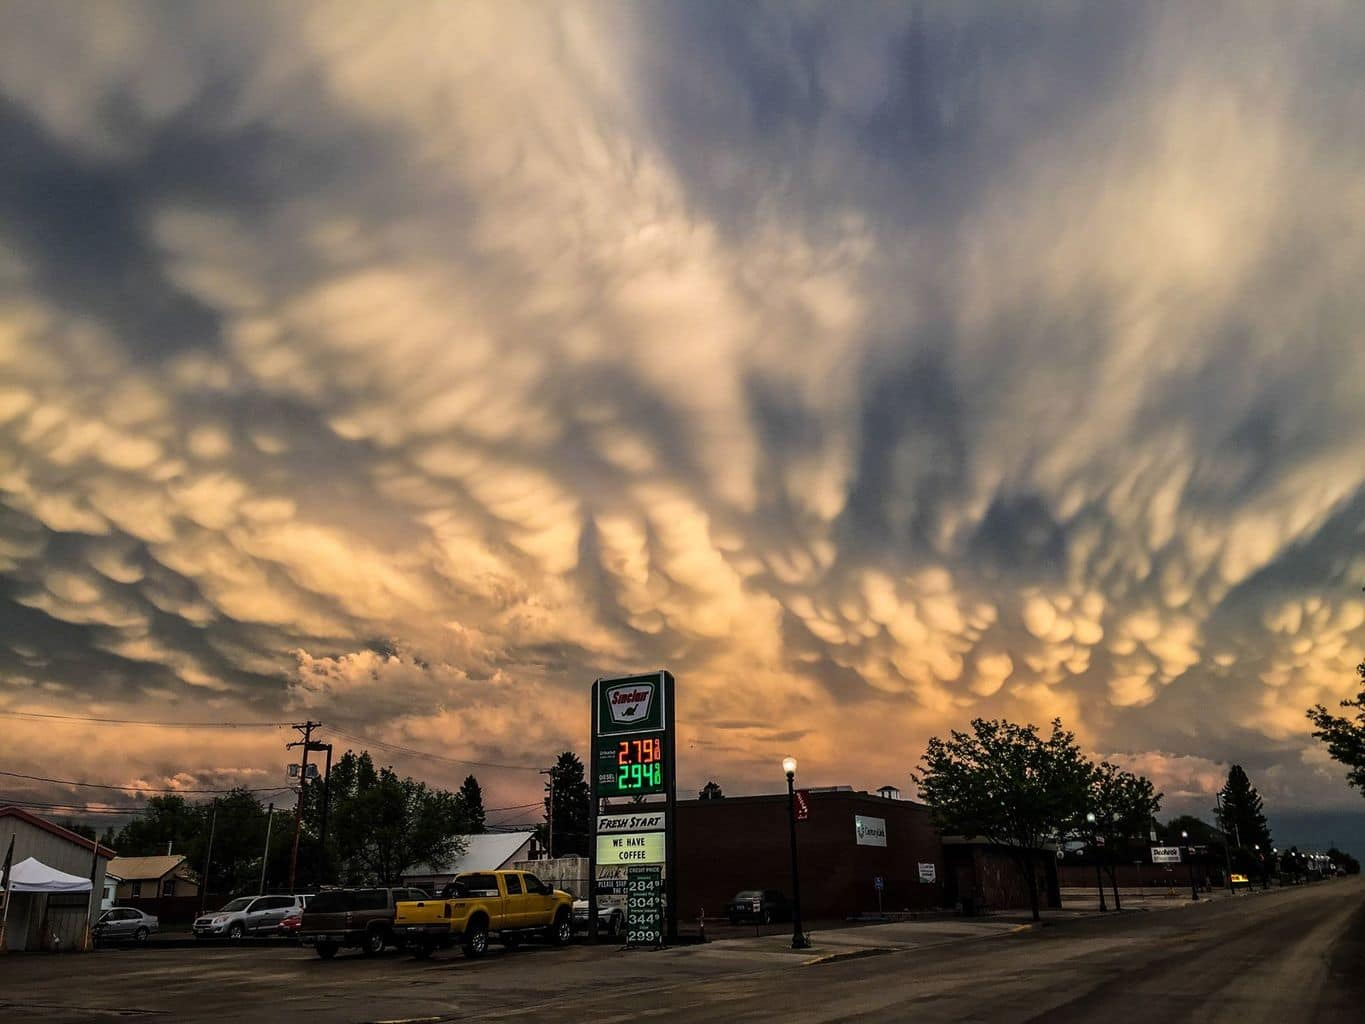 The second time this chase trip where I was eating dinner and came out of the restaurant and photographed an awesome mammatus display with my IPhone. Lusk, WY June 16.